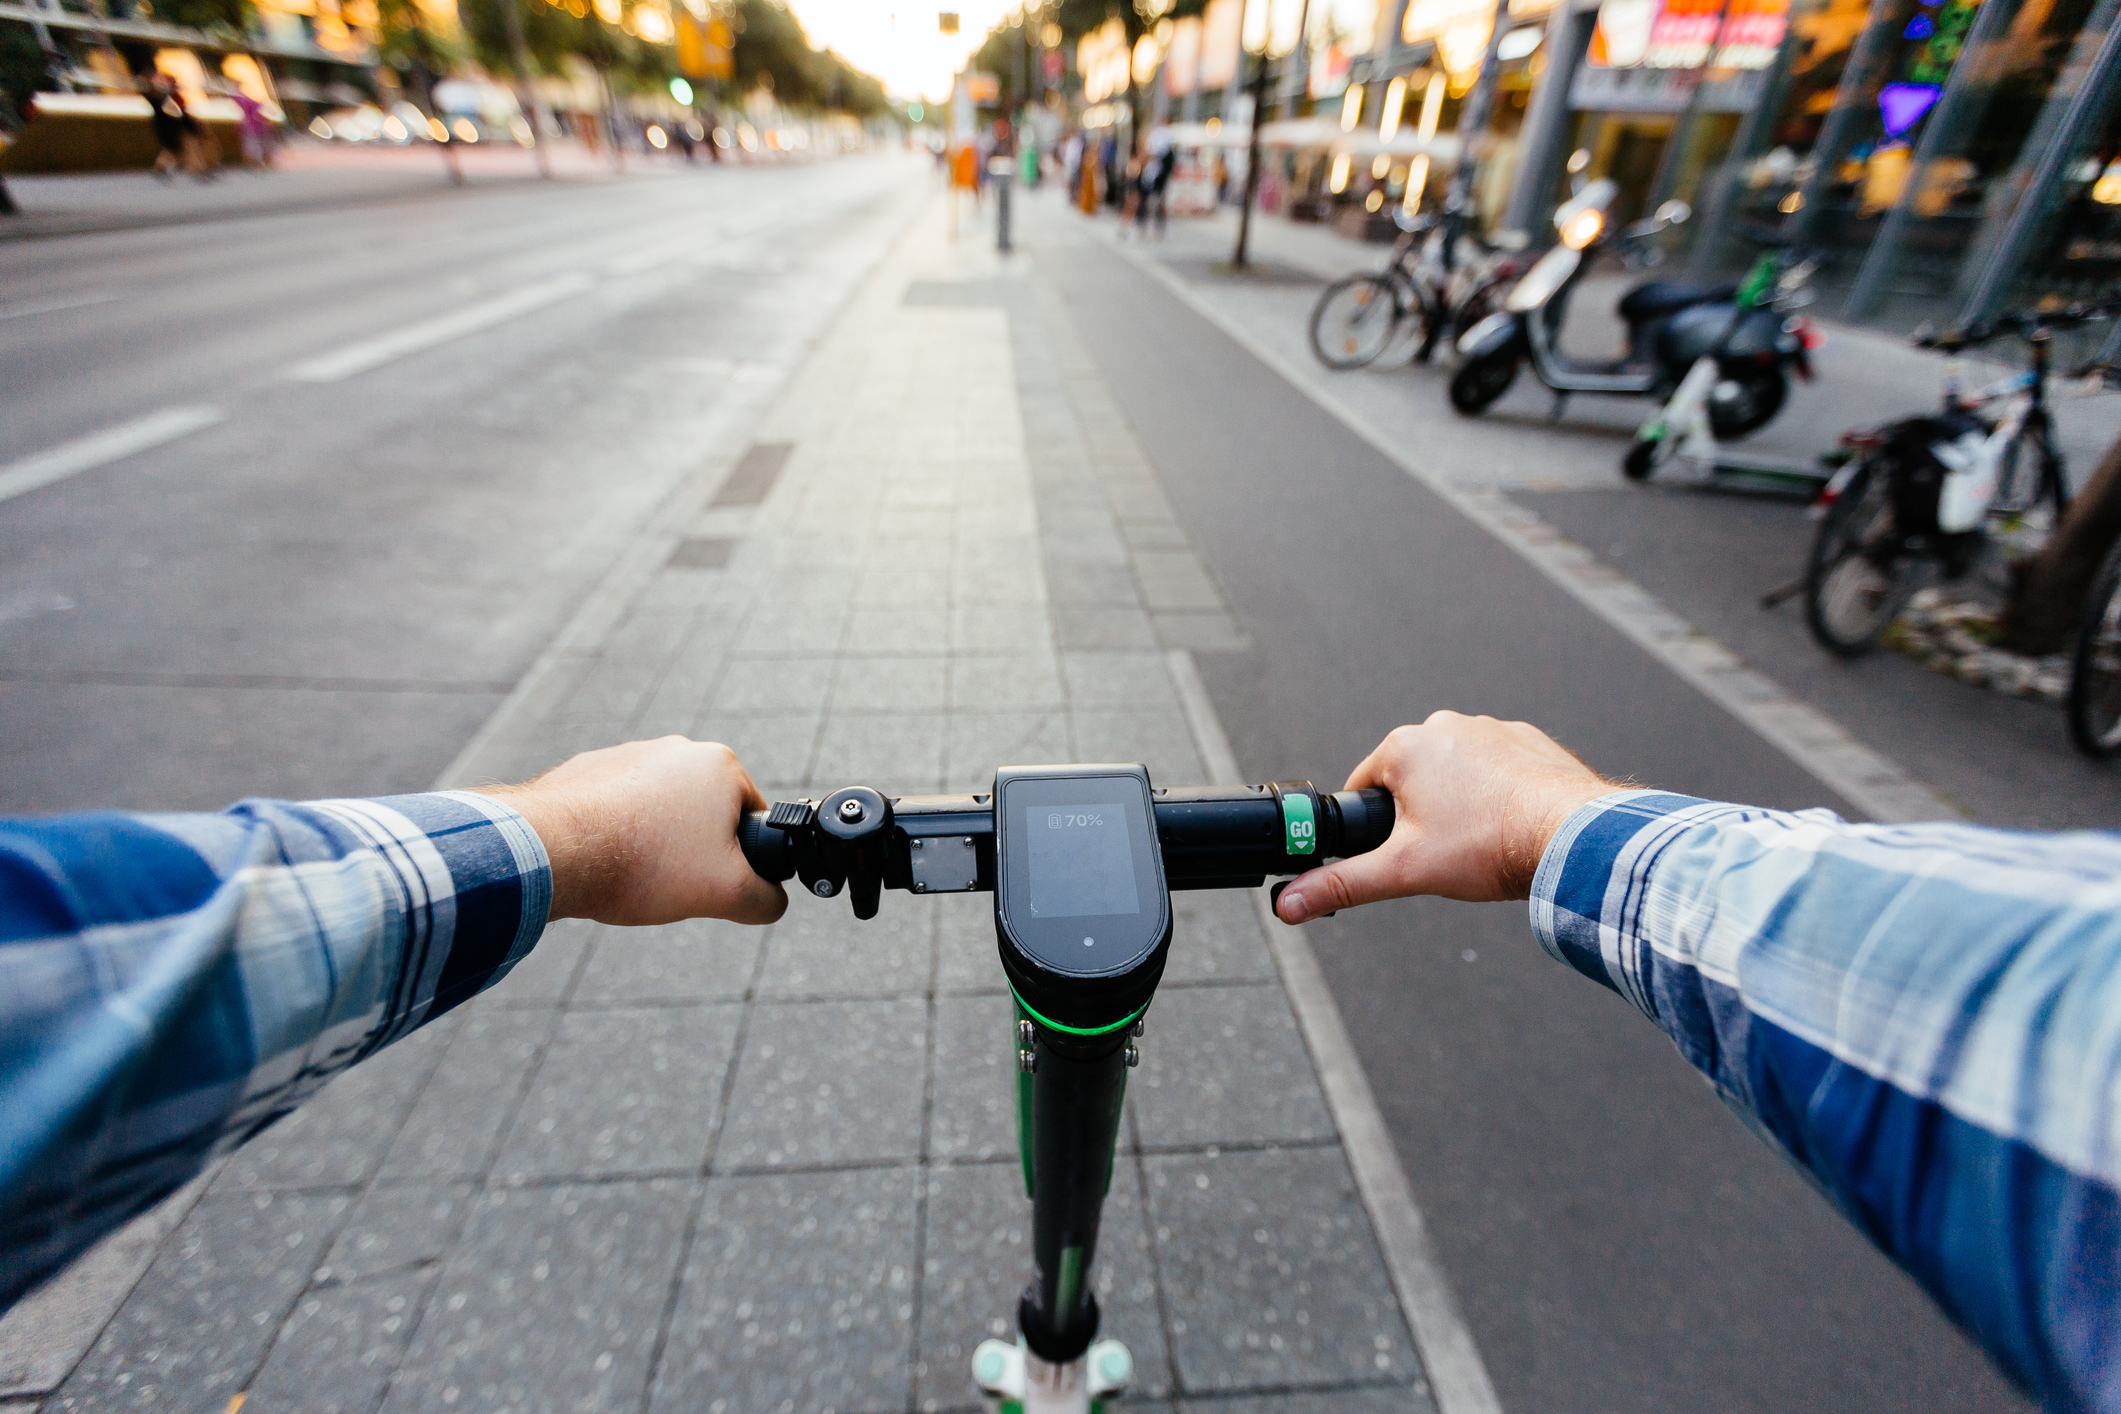 First person view of riding an e-scooter in a city